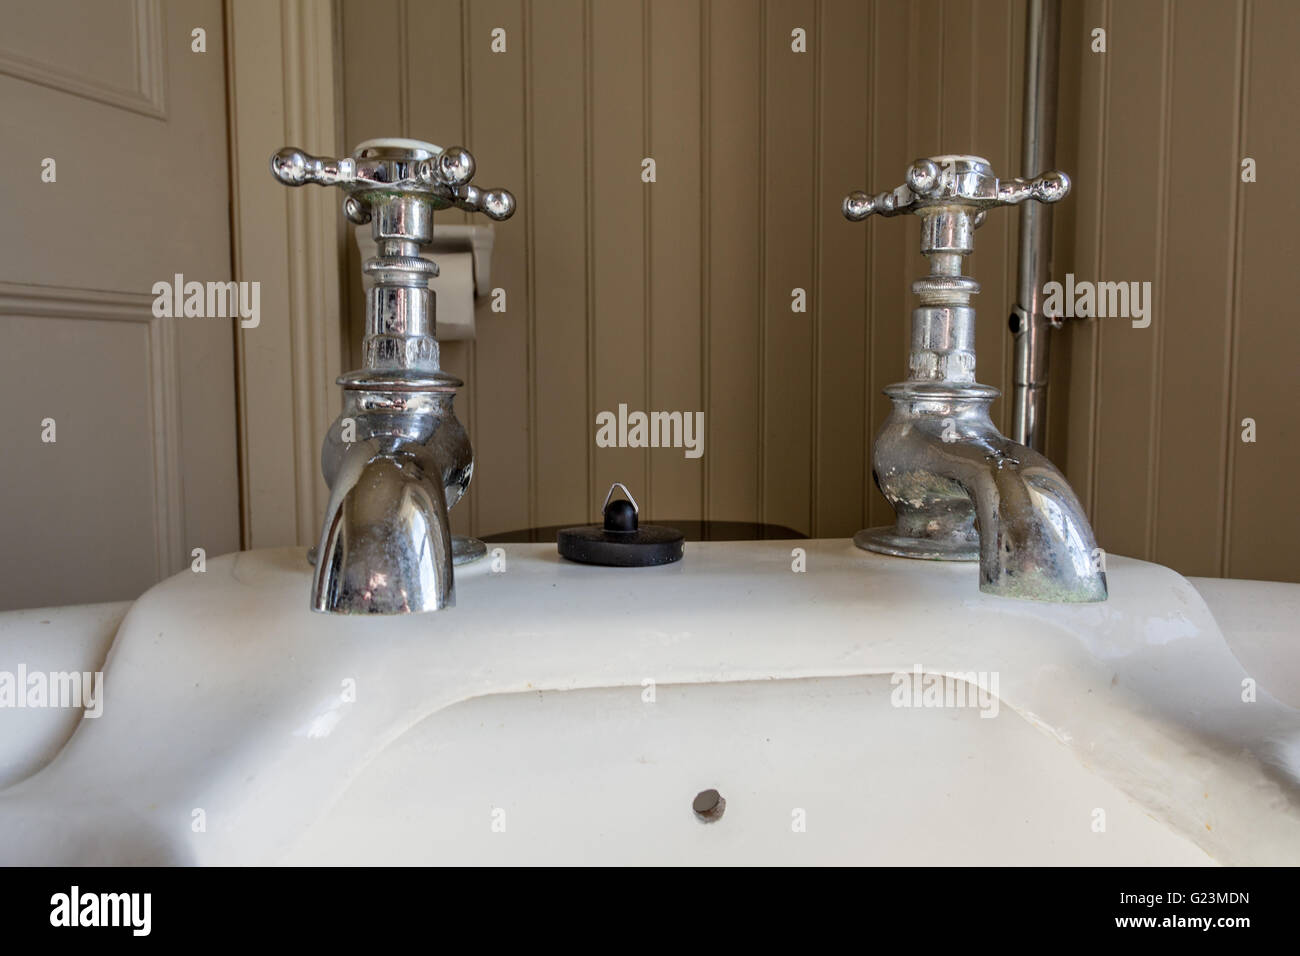 Hot and Cold taps - Stock Image